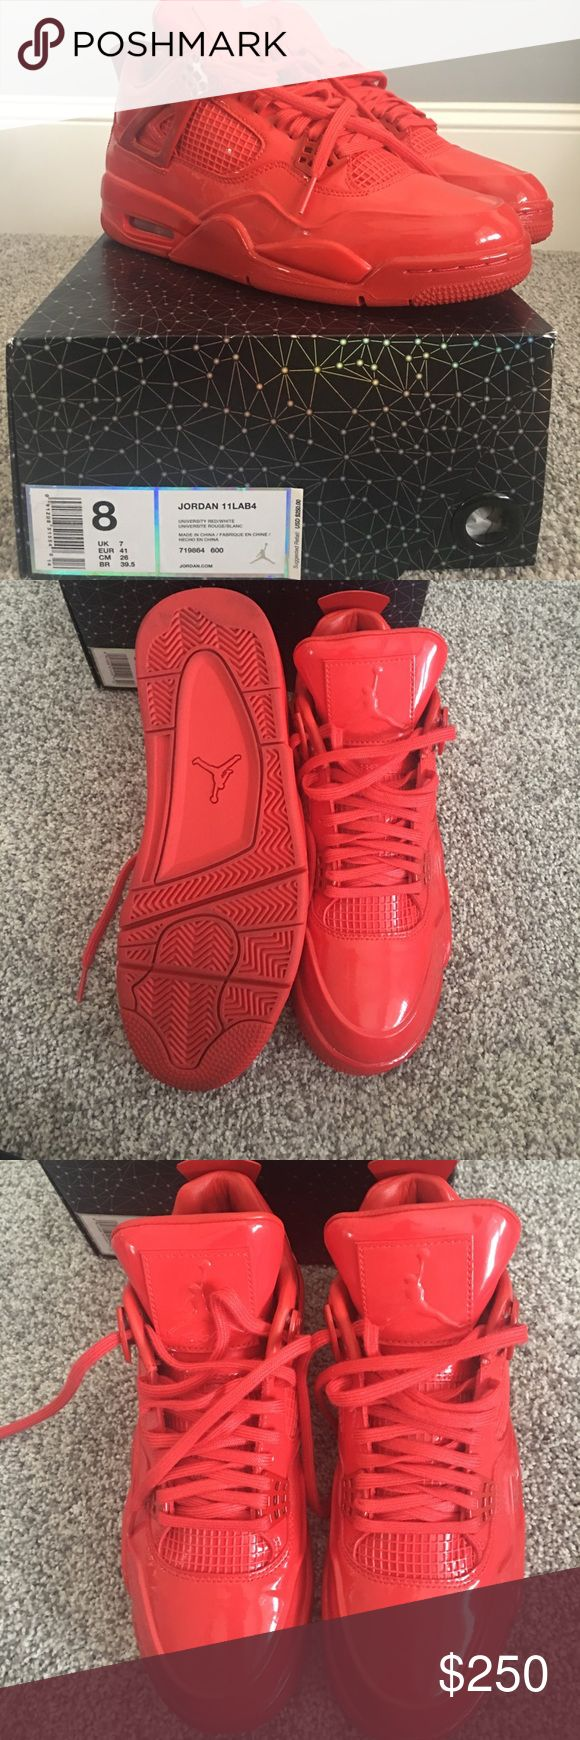 Jordan sneakers 11Lab4 - red Men's size 8 Jordan 11Lab4 (red) sneakers. Only worn twice, great condition! Jordan Shoes Sneakers